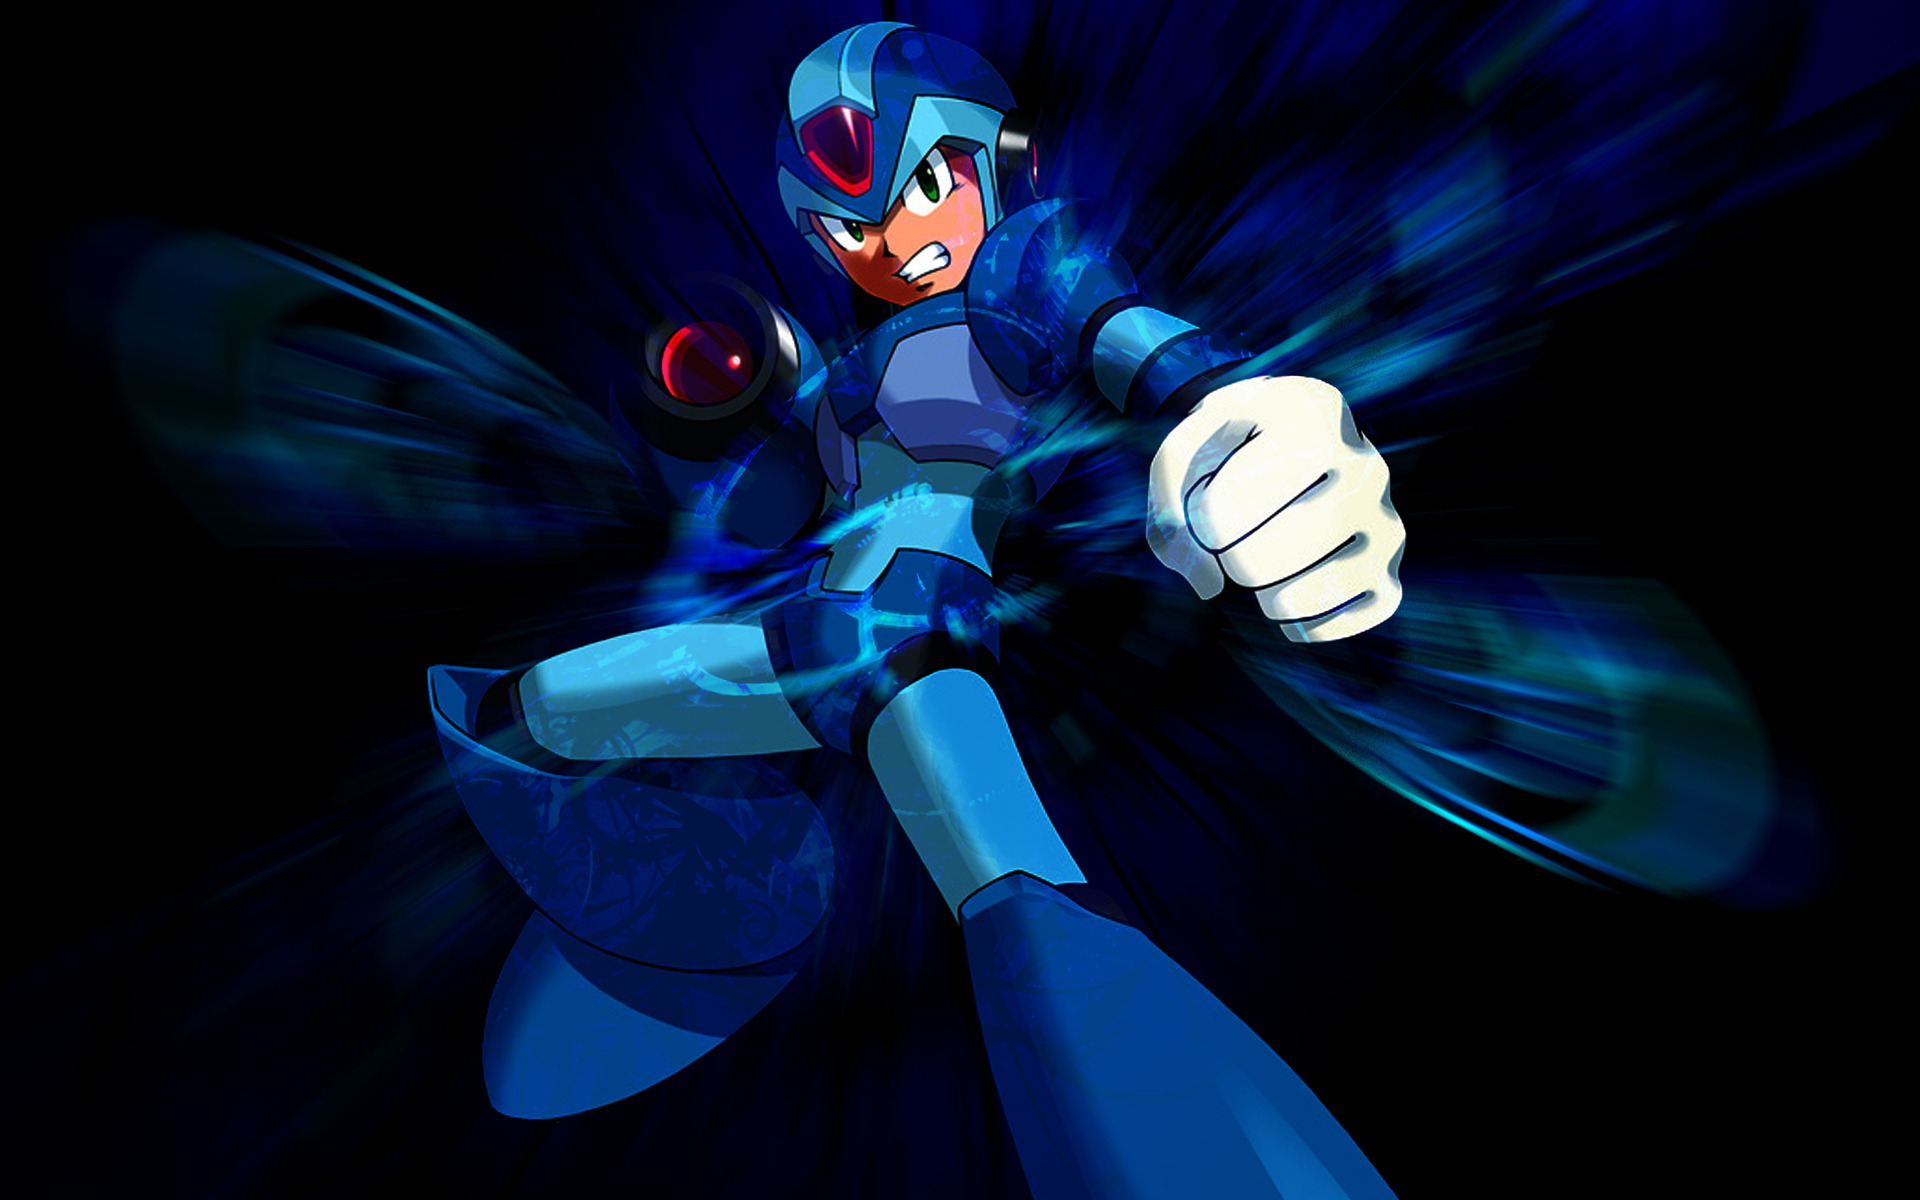 Download Top Wallpapers 2016 Megaman X Wallpaper Beautiful